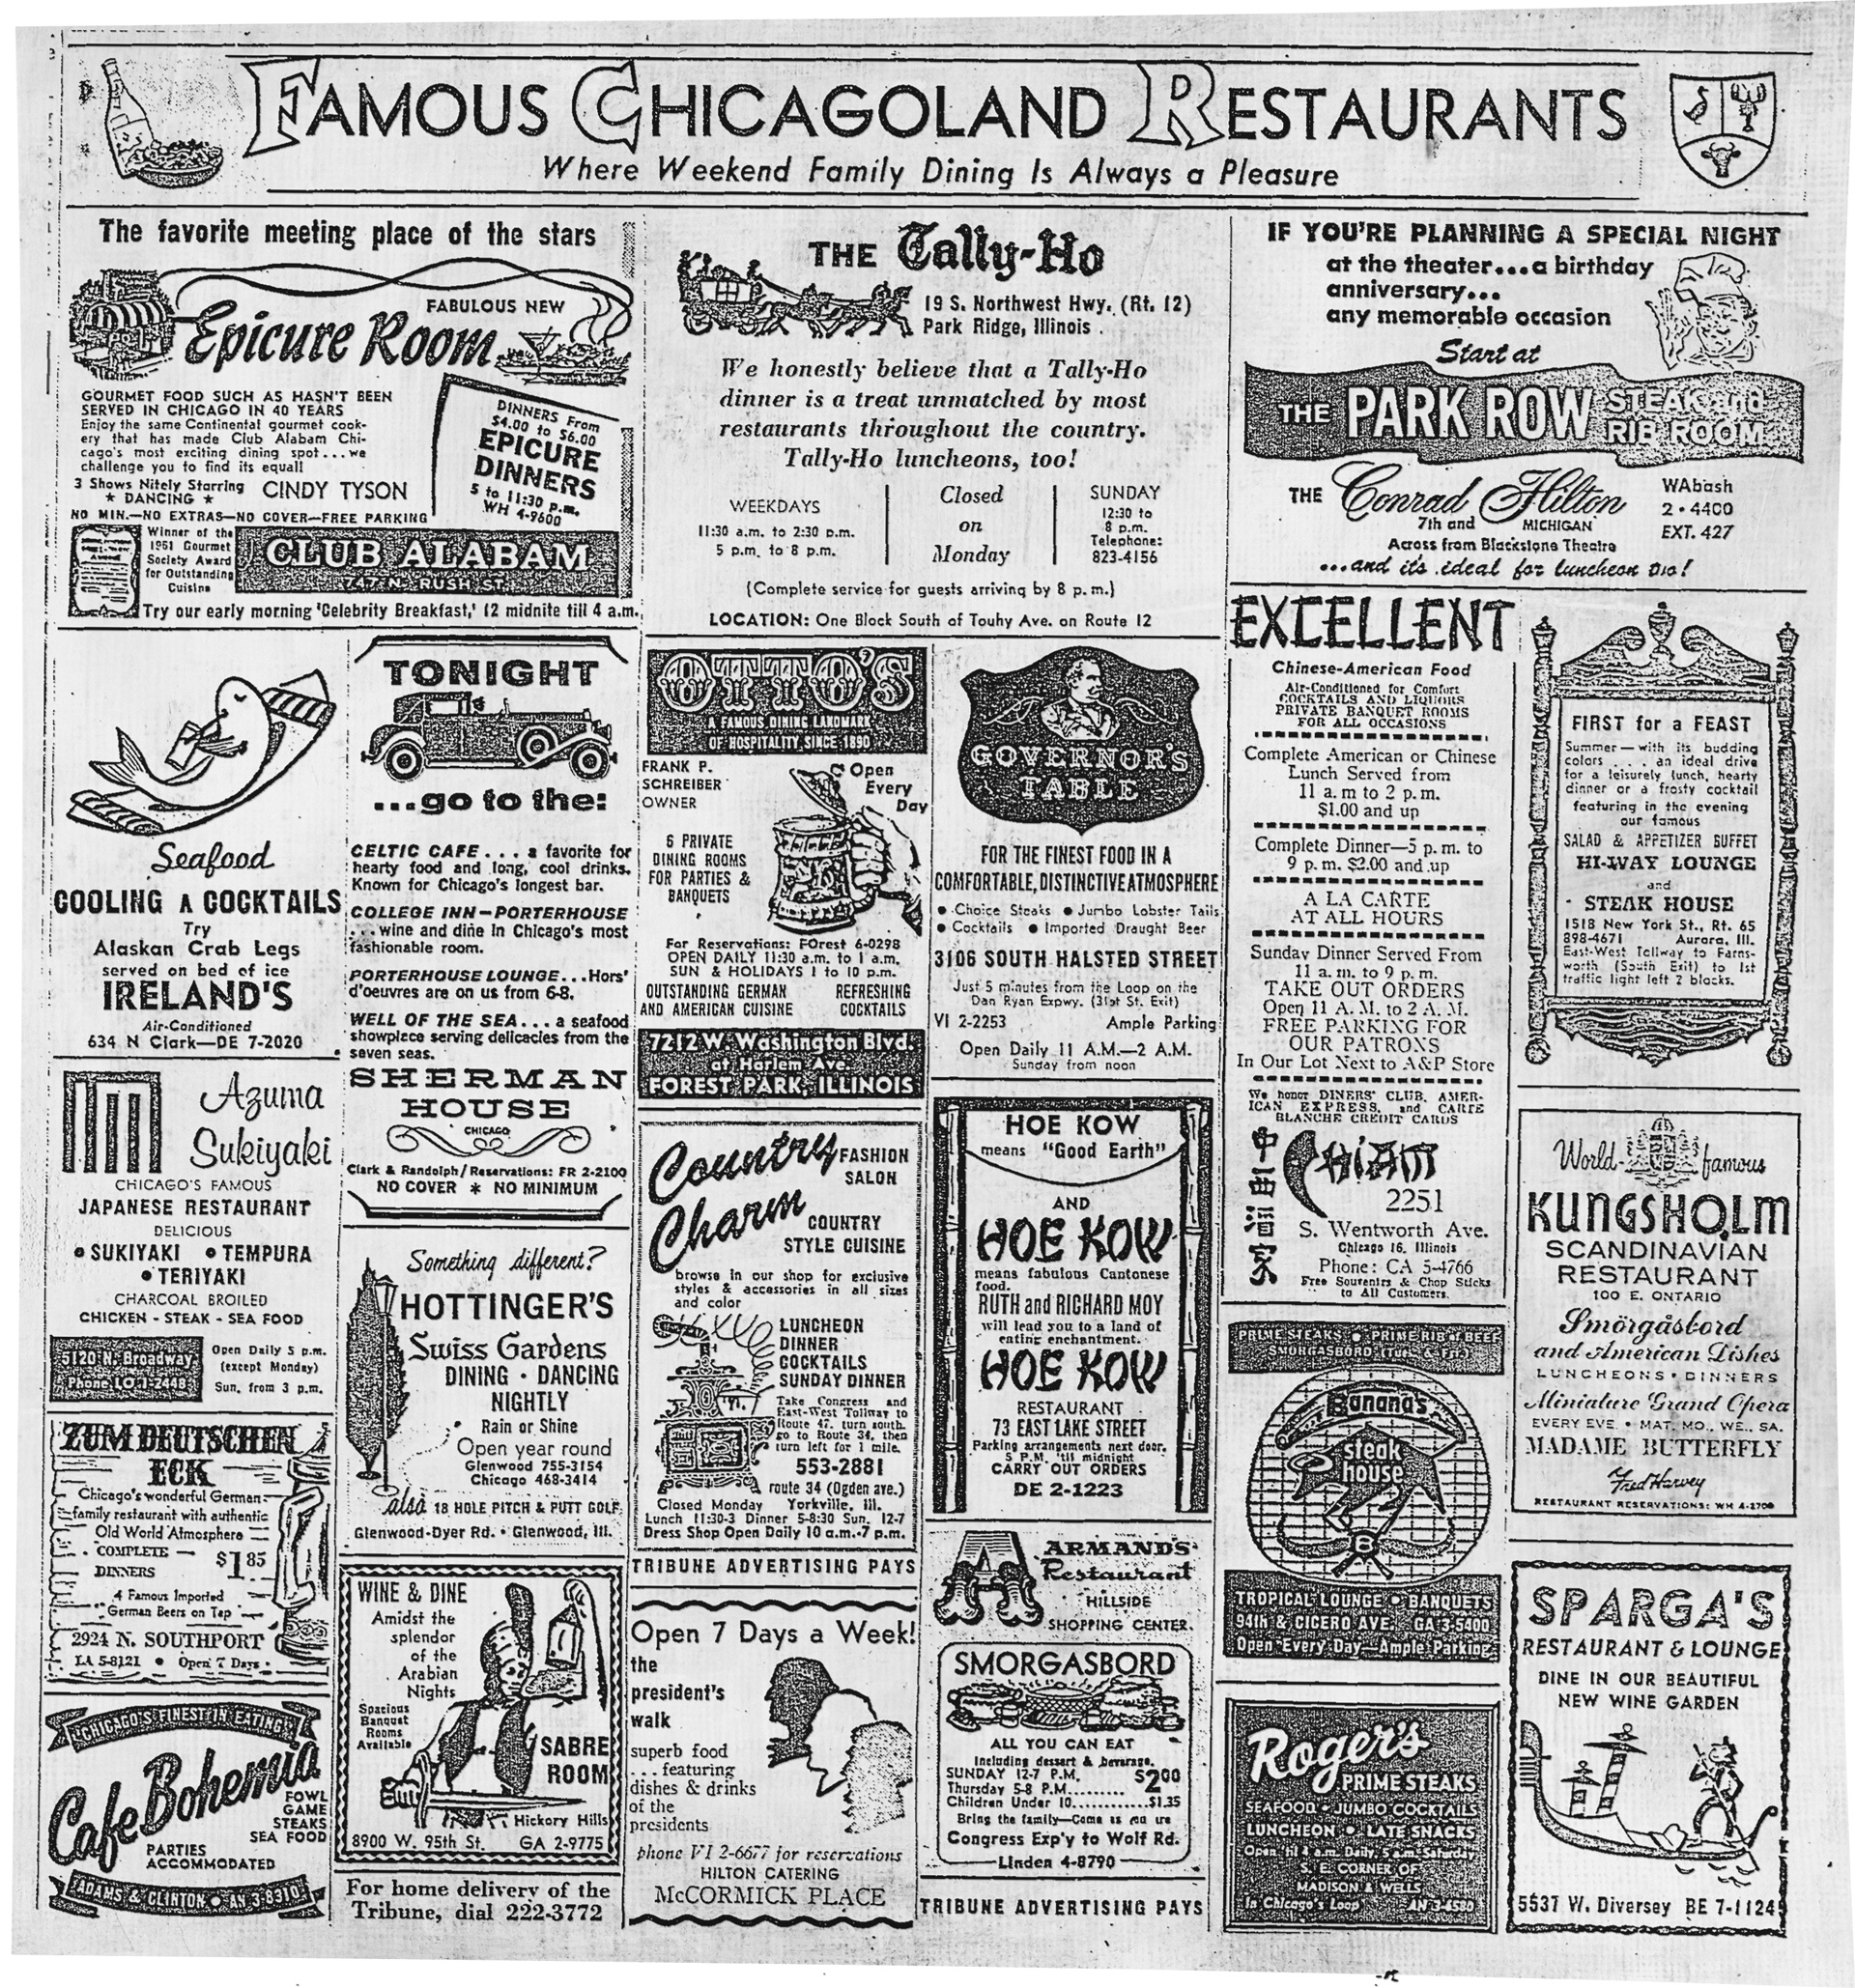 chicago_restaurants_small